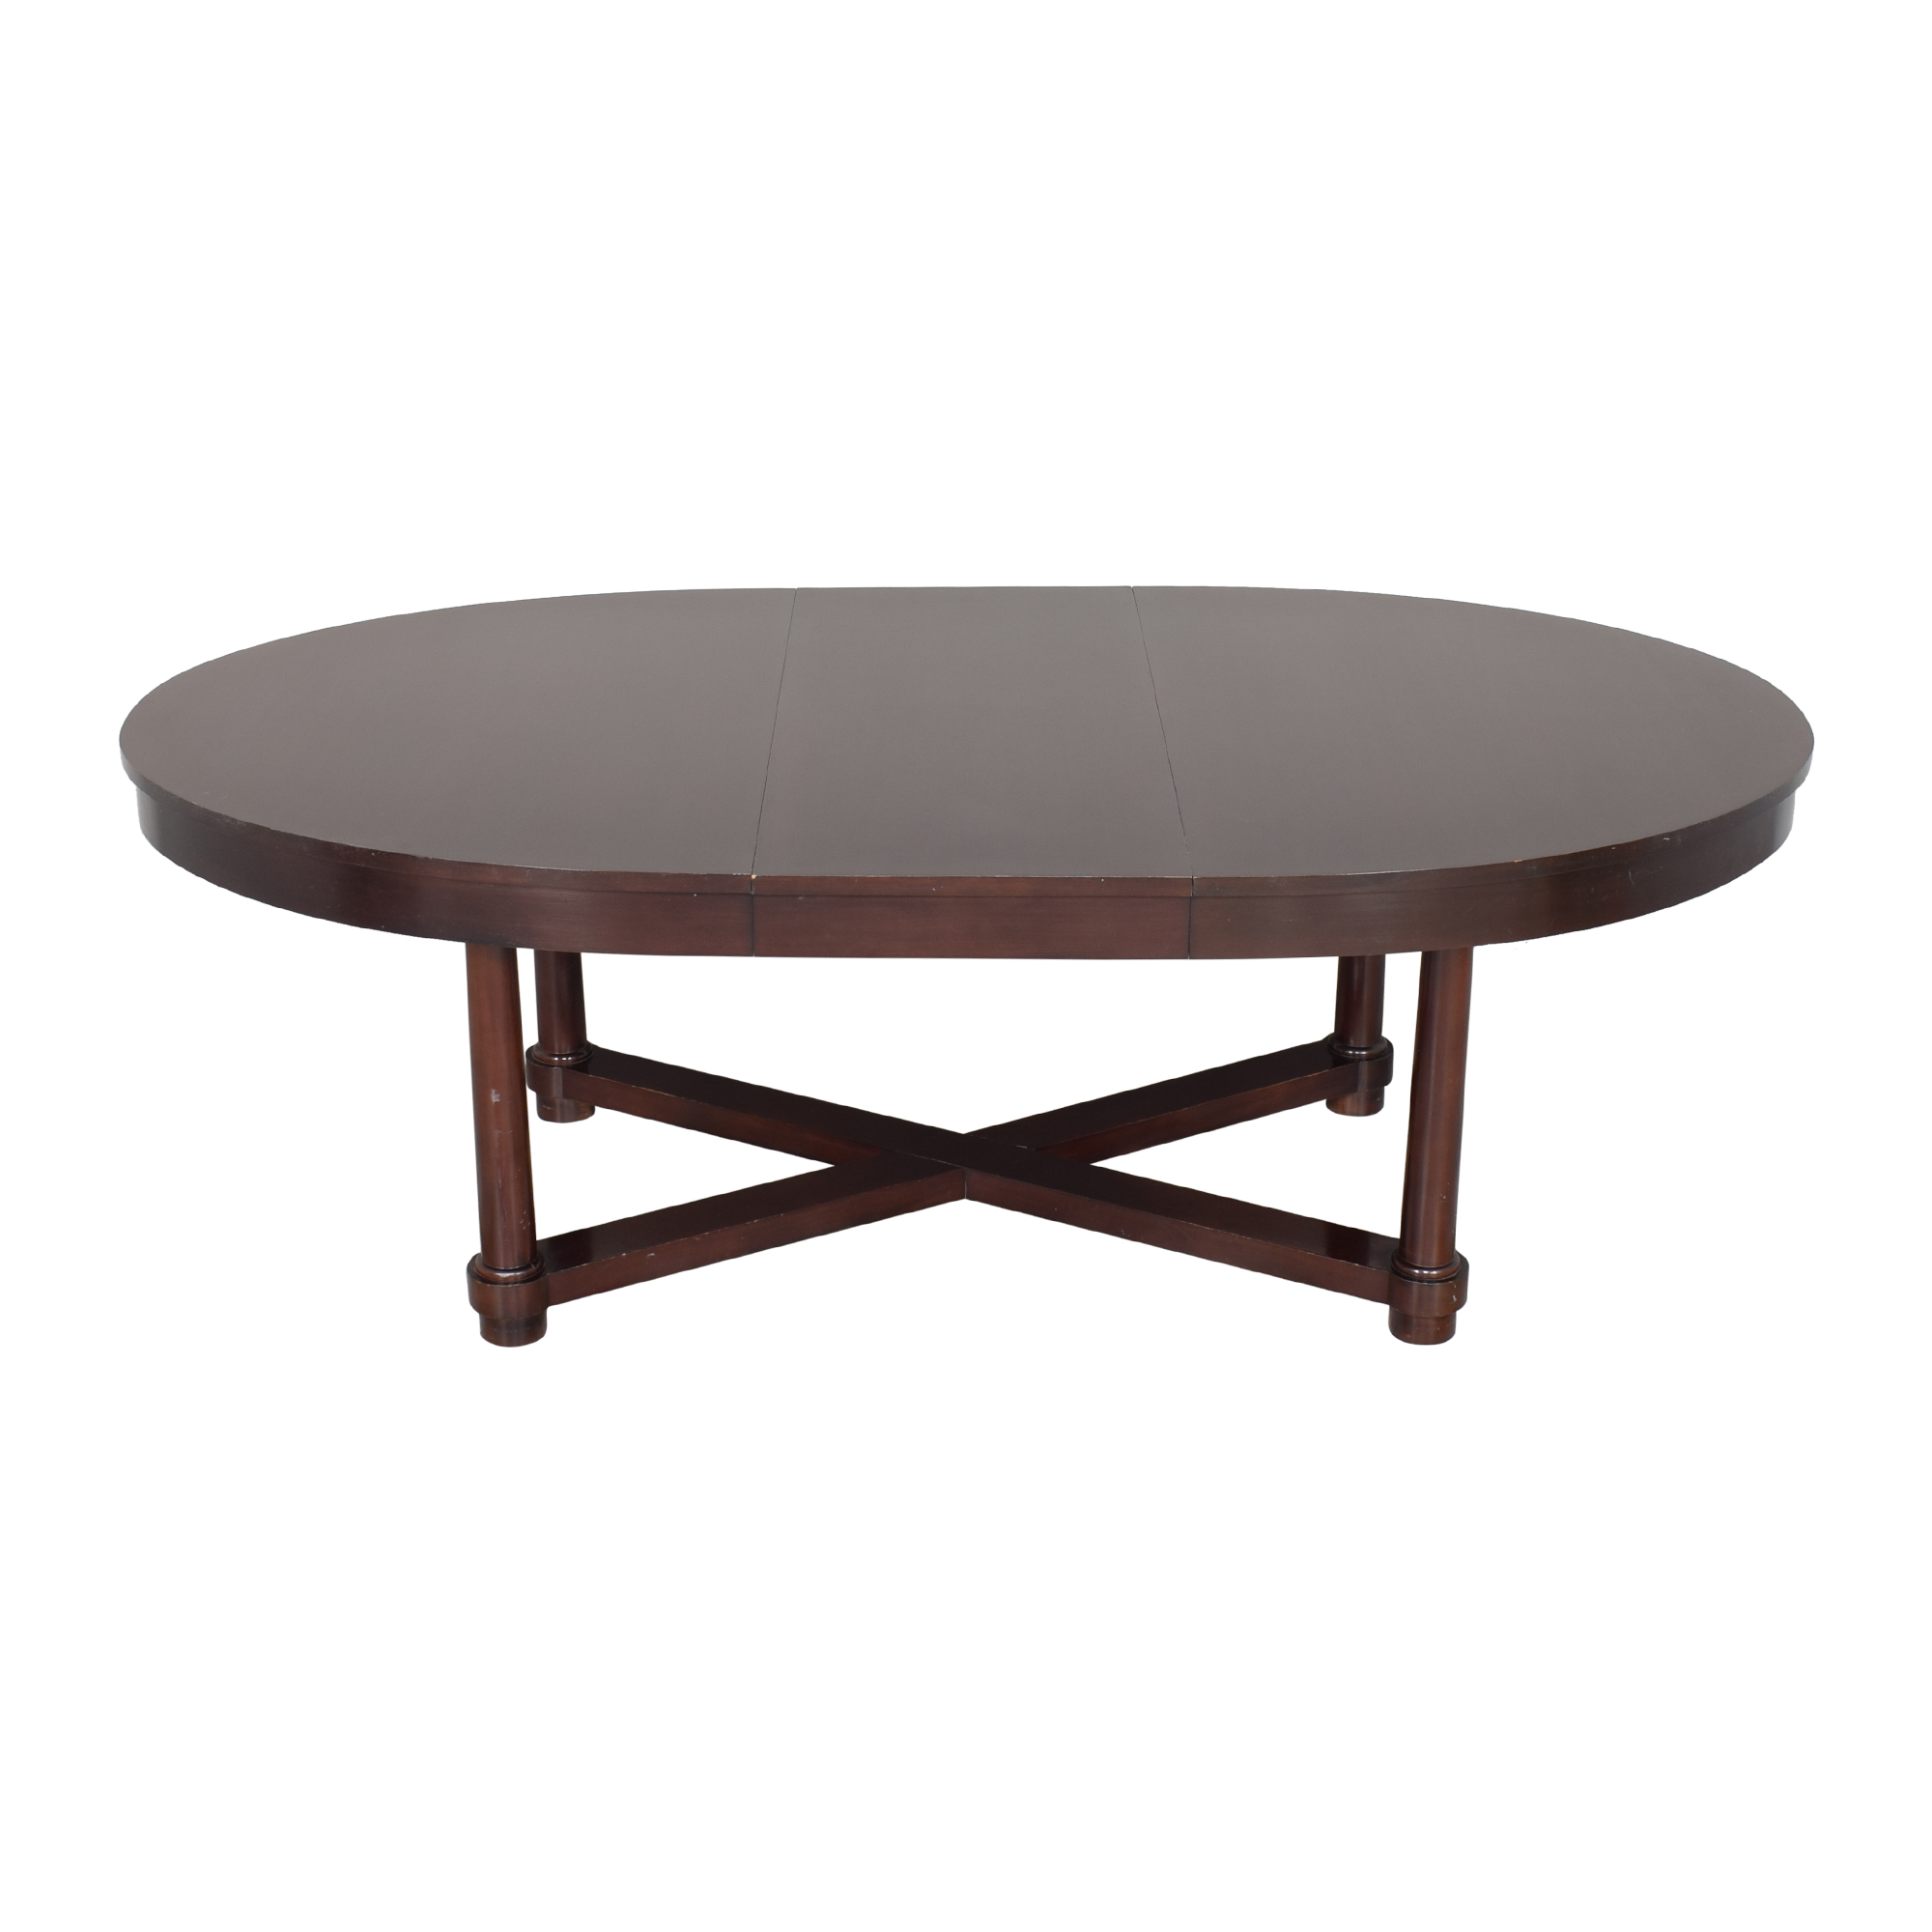 Baker Furniture Baker Furniture Barbara Barry Extendable Dining Table second hand